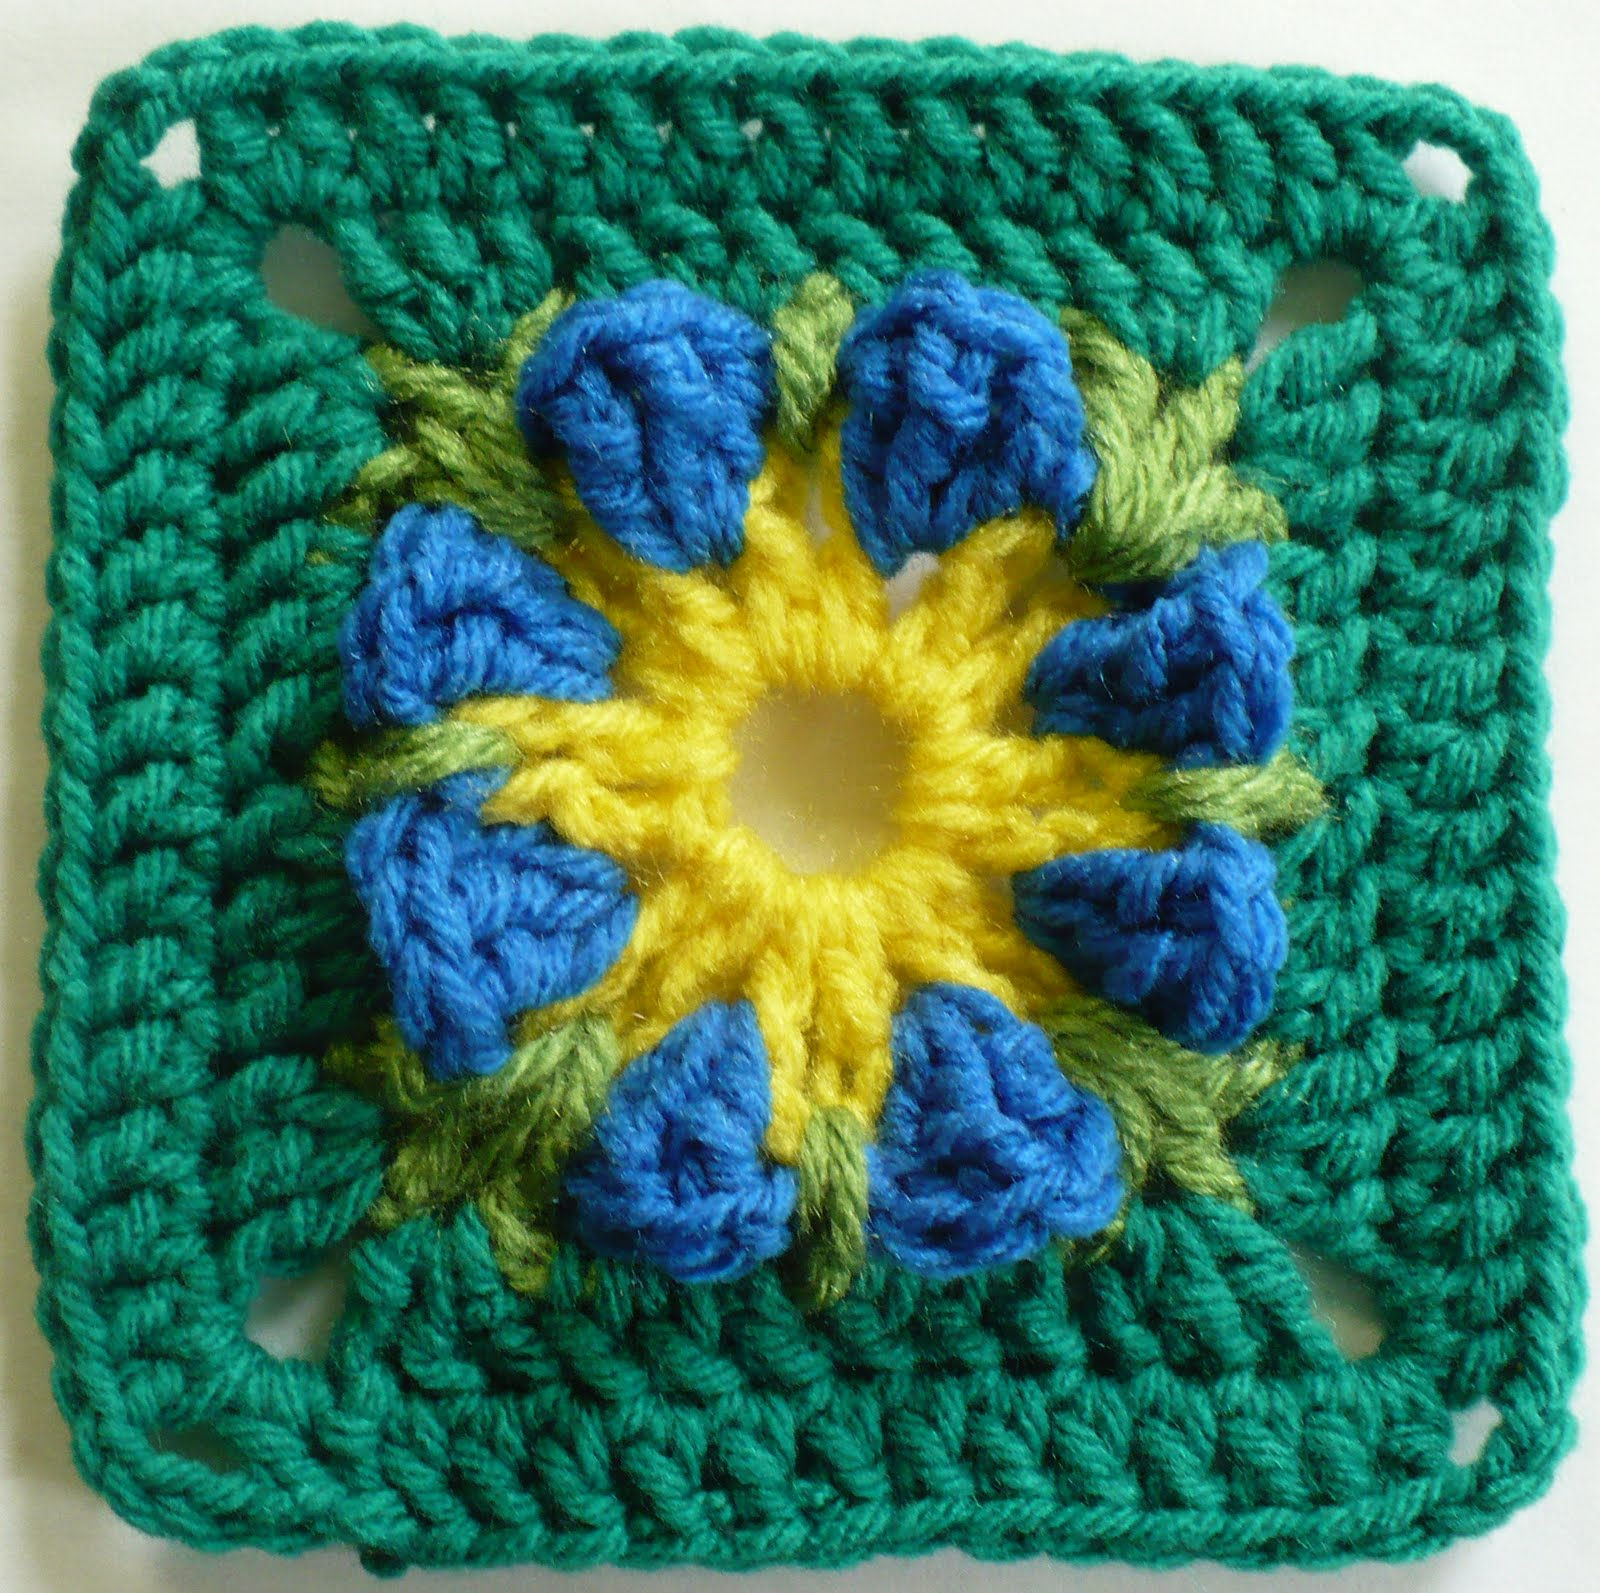 Rainbow Outlines Granny Square – Free Crochet Pattern for a